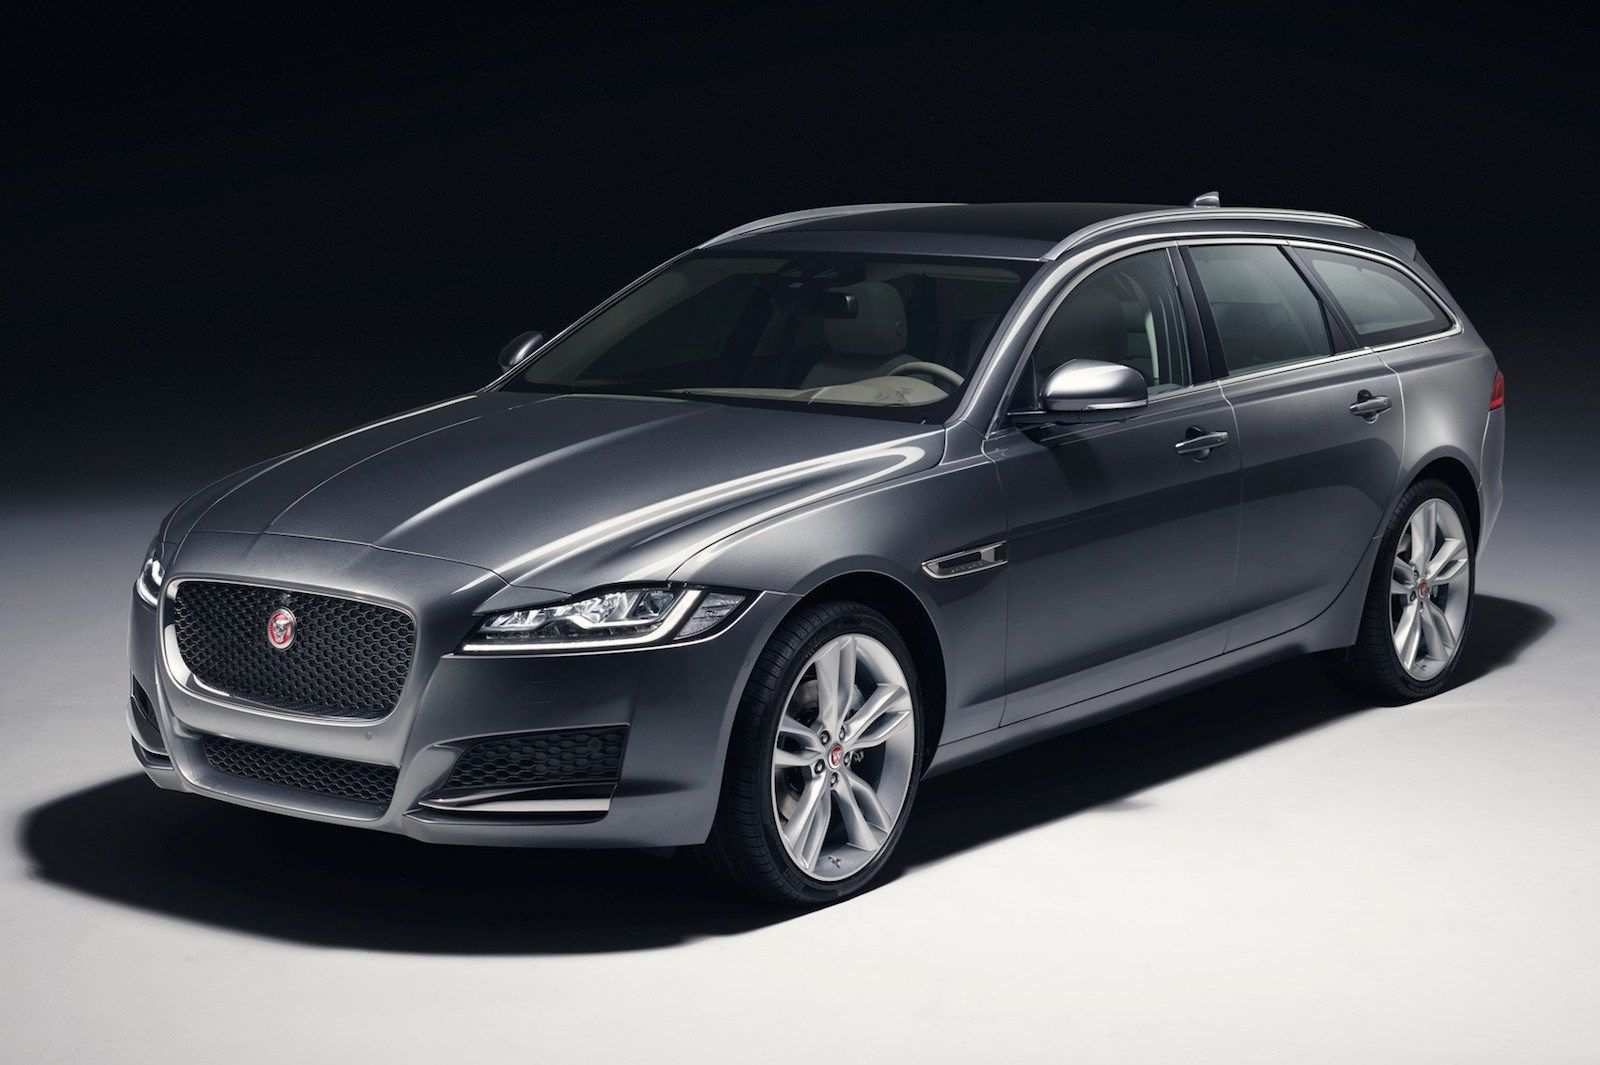 64 The 2019 Jaguar Station Wagon Redesign And Concept